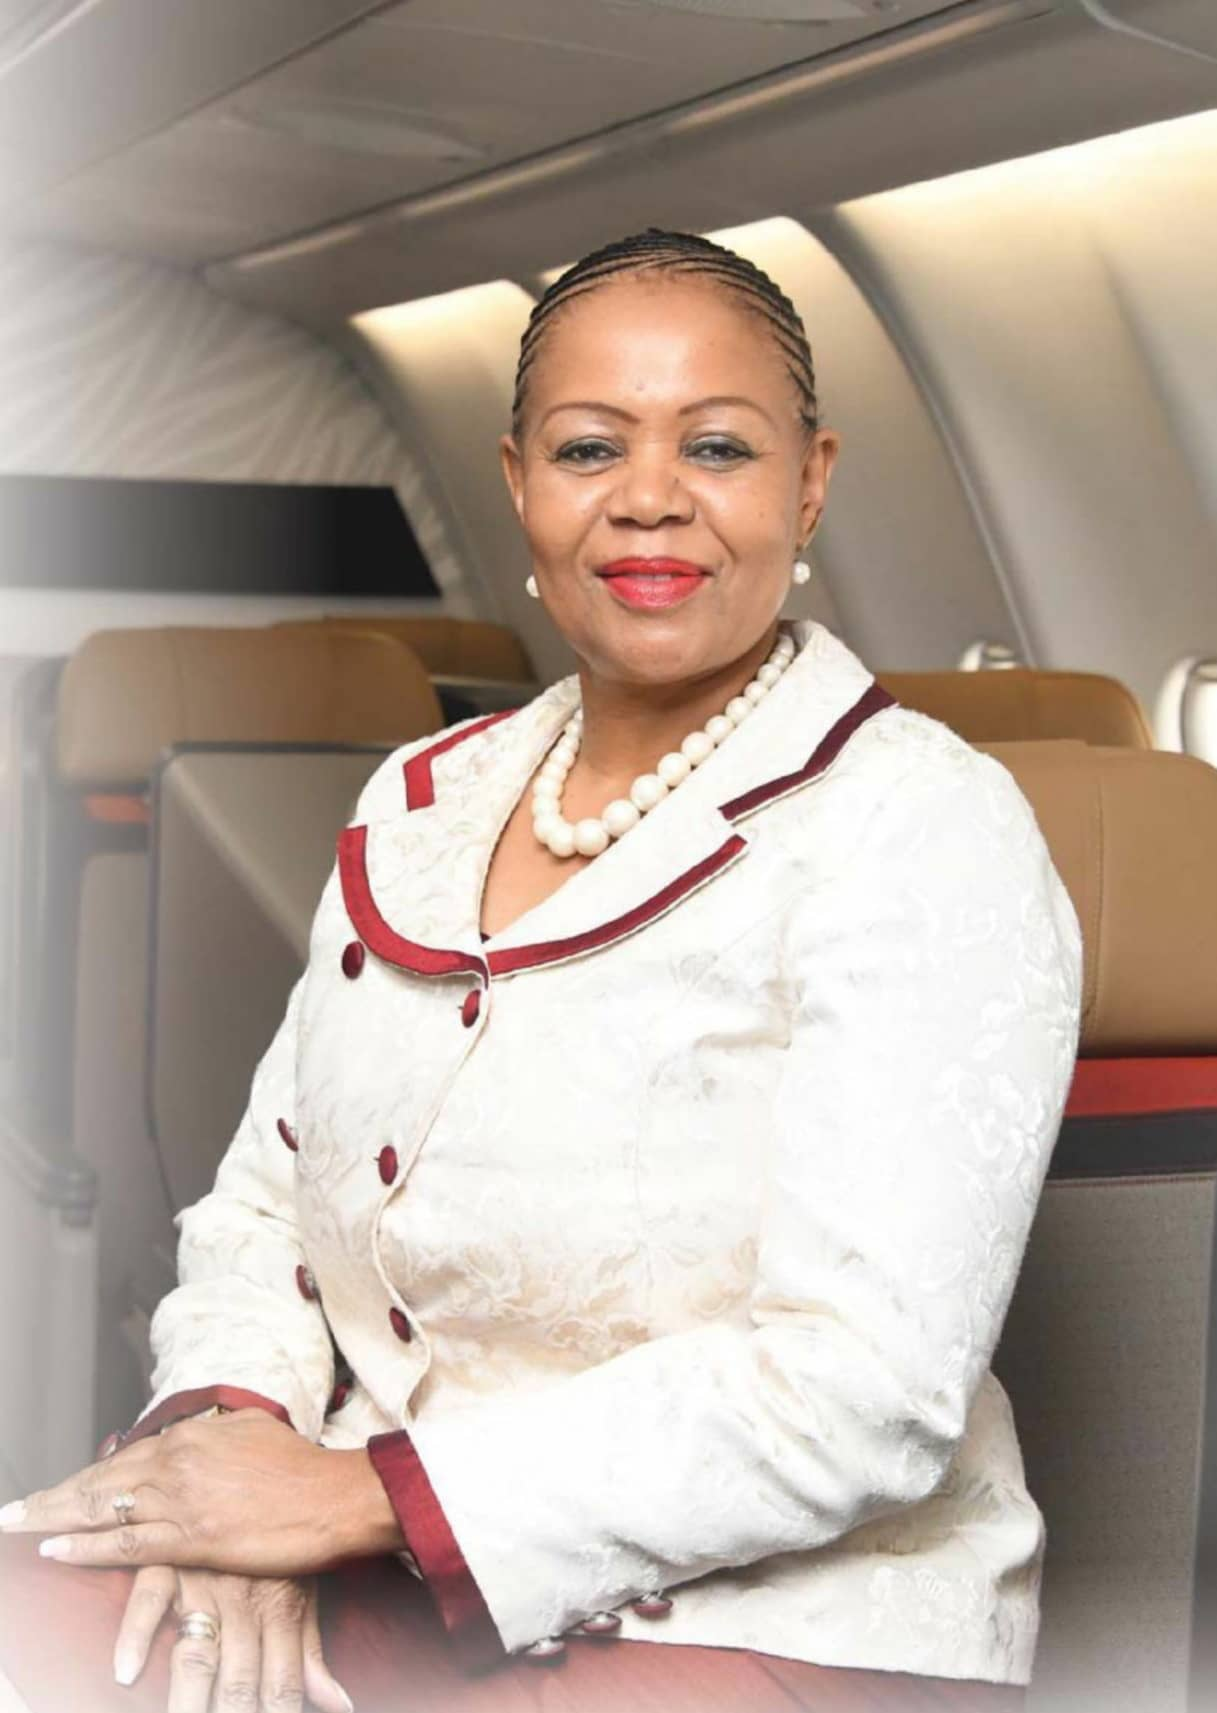 From Flight Attendant To CEO